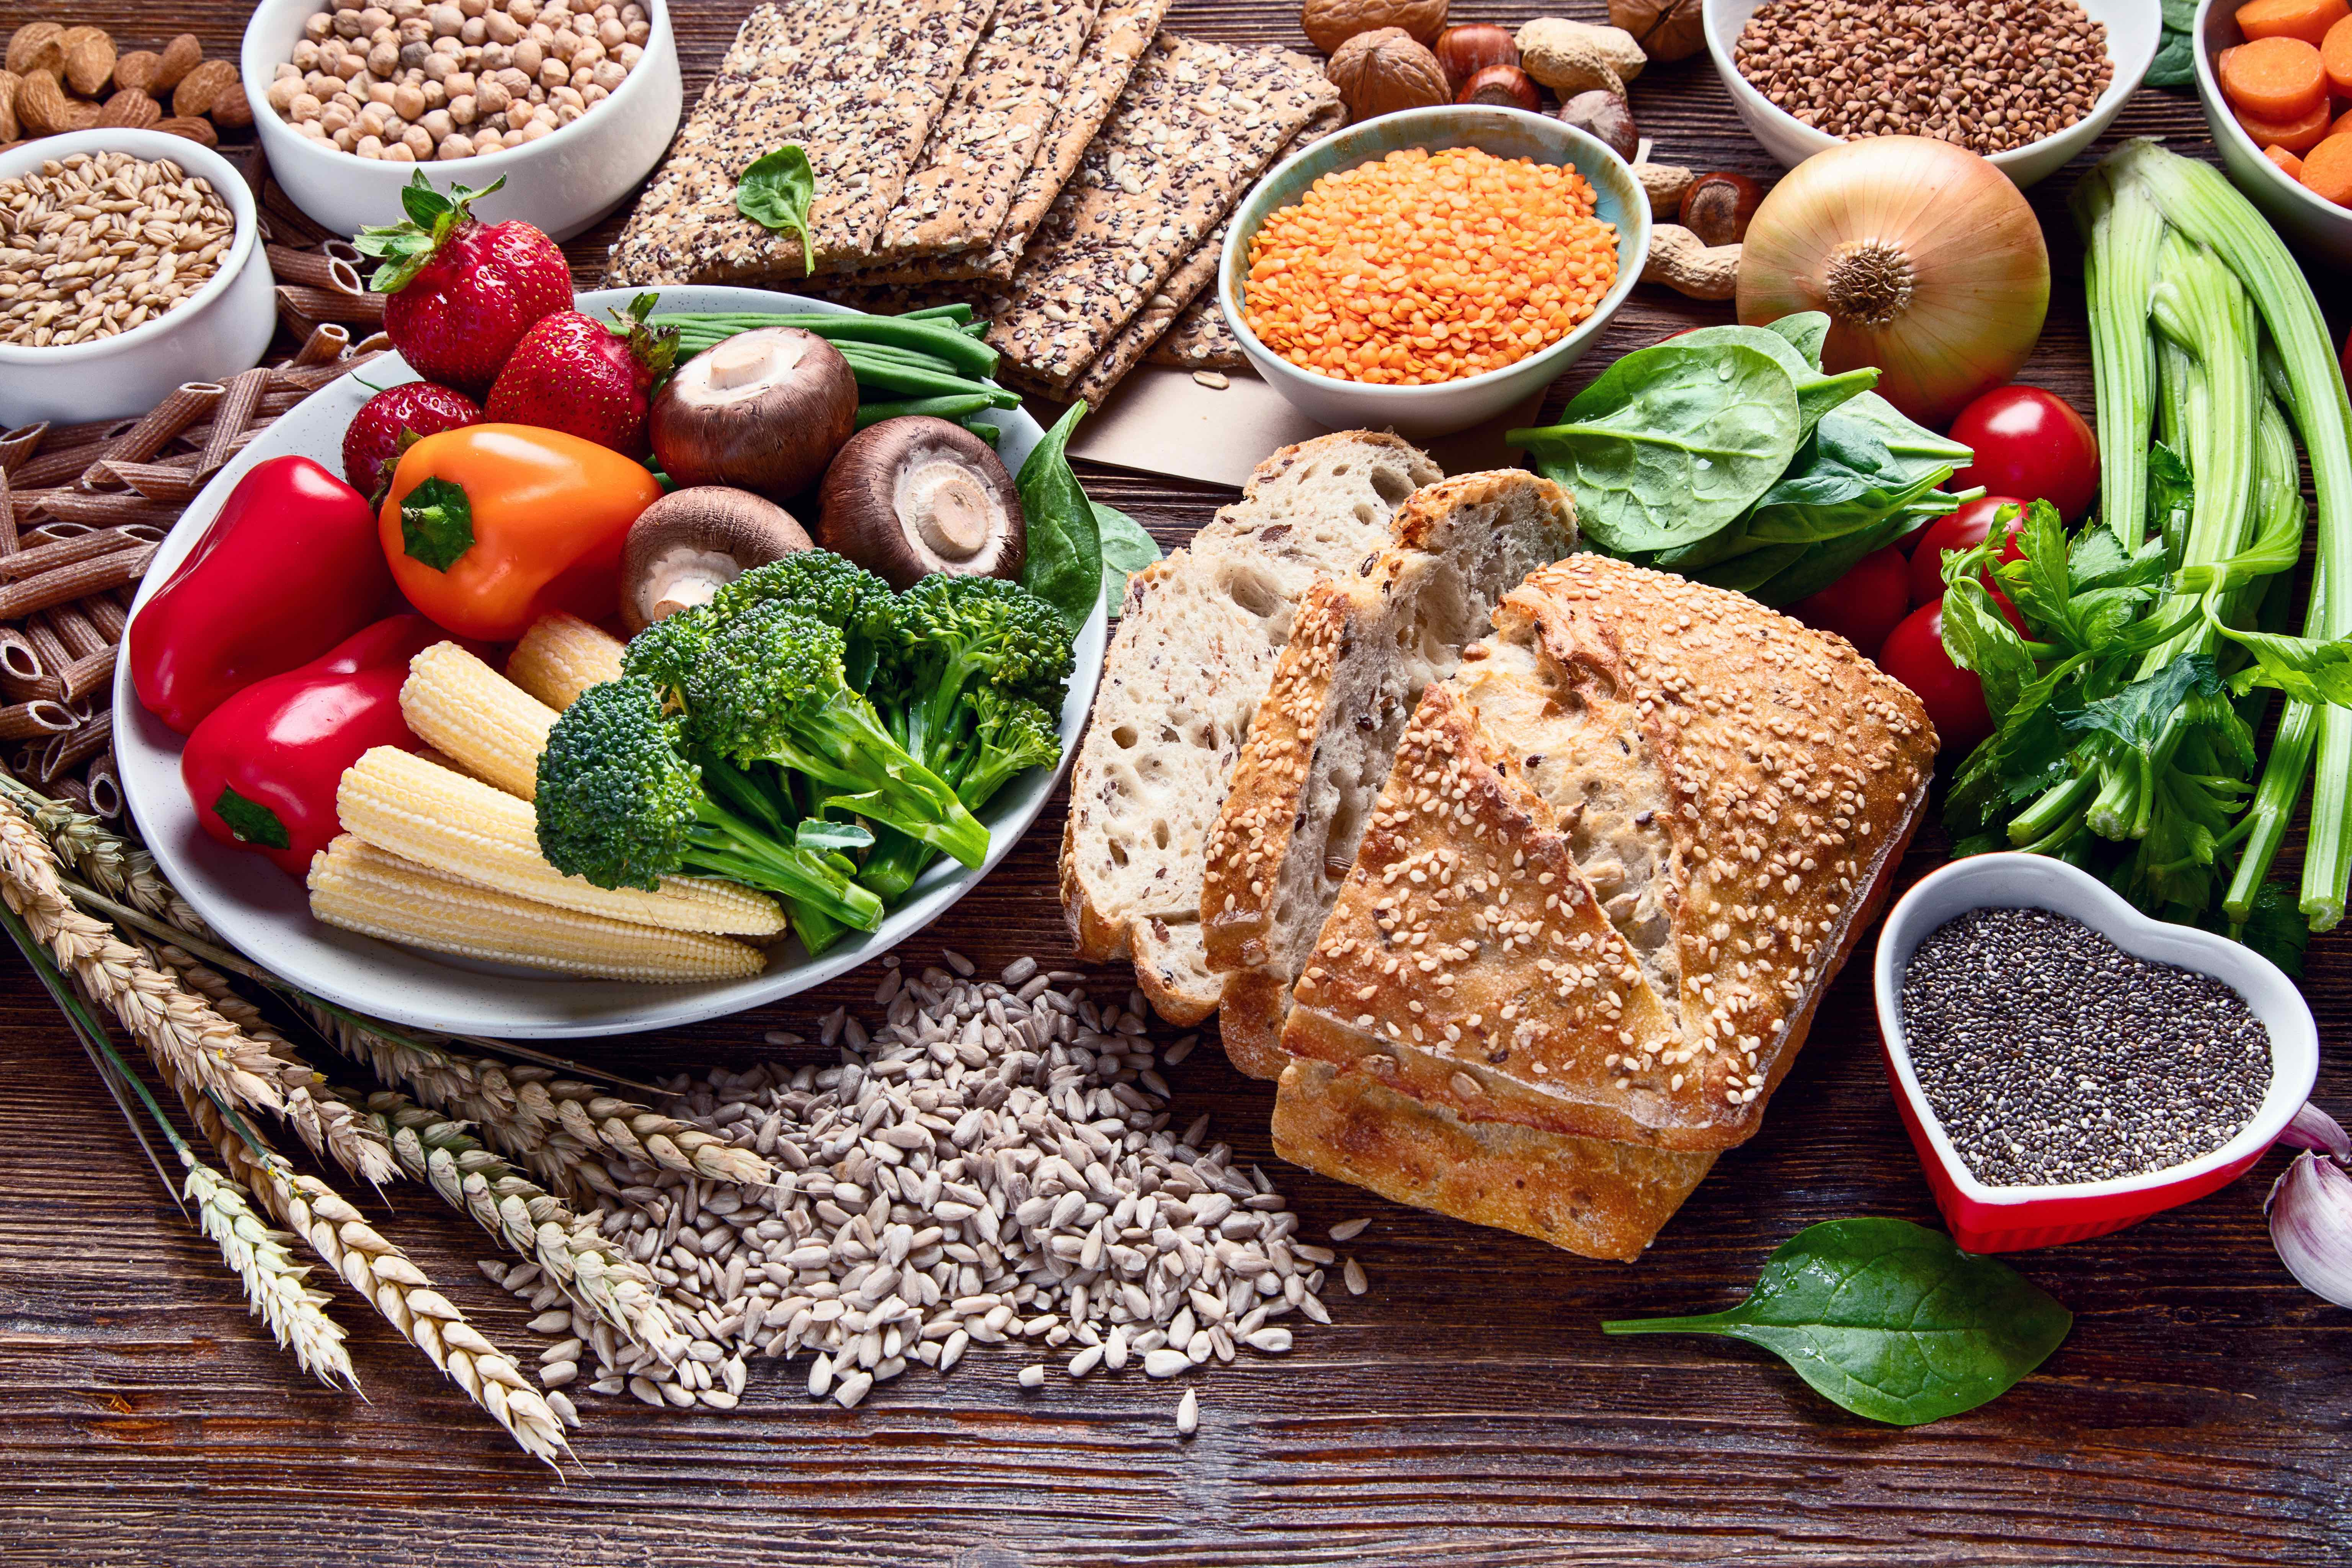 Eating more fiber can help digestion move more smoothly and lessen the likelihood of a painful flair-up of diverticulitis.(Tatjana Baibakova/Shutterstock)